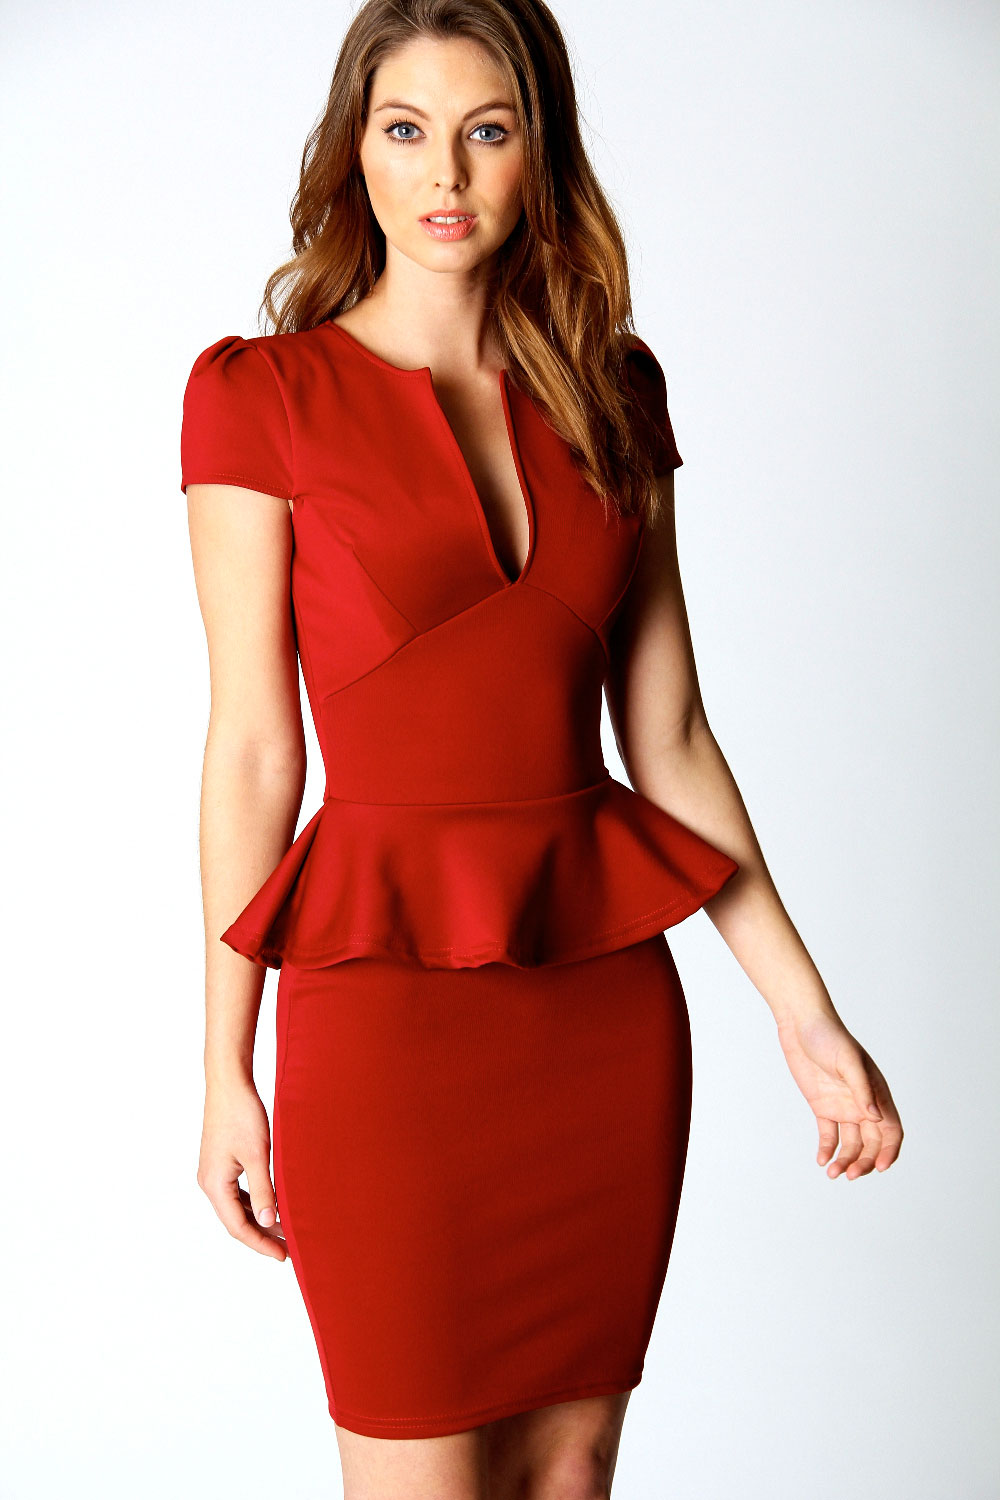 peplum-red-dress